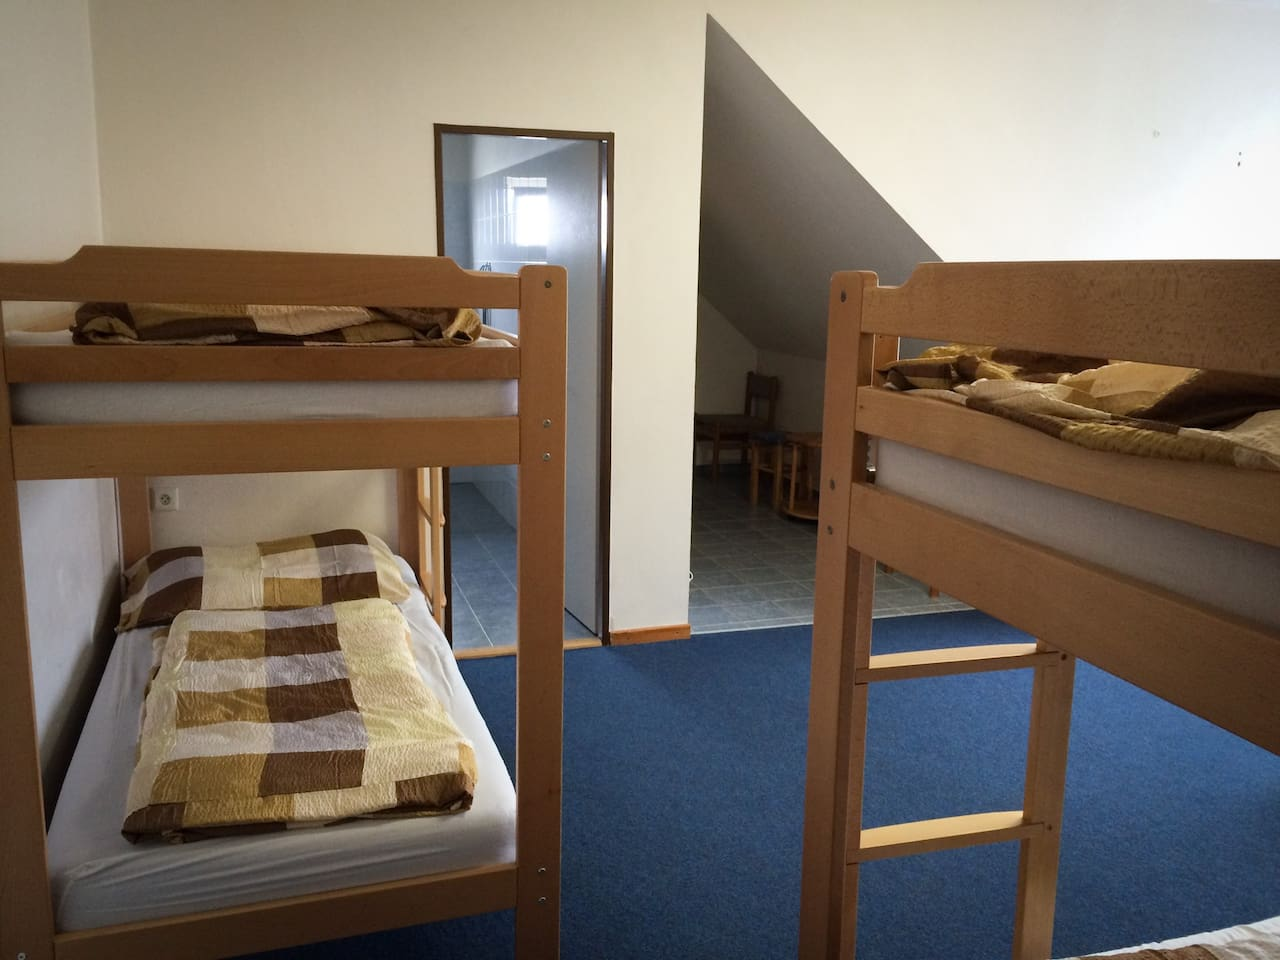 Two bunk beds and a double bed, total of six beds.